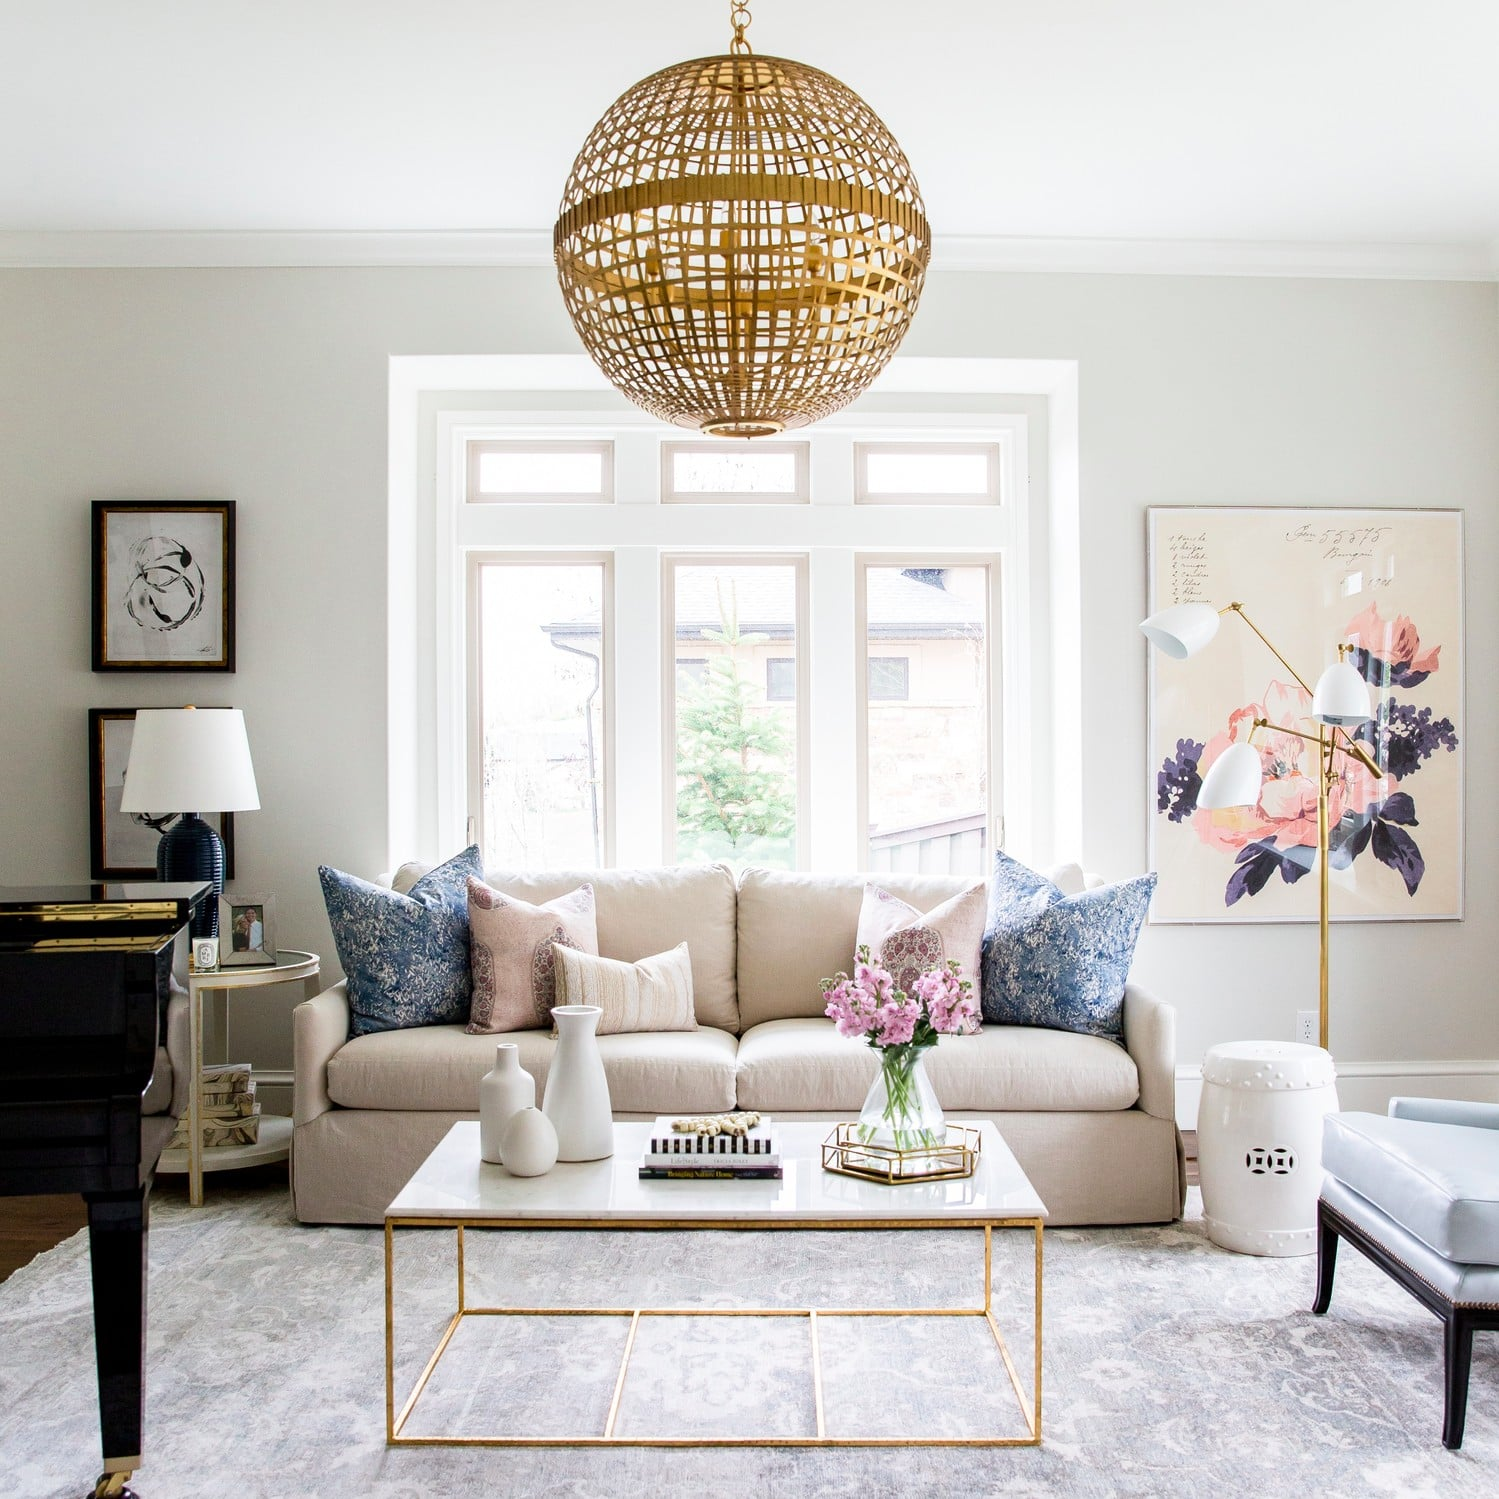 Living Room Ideas Decorating Inspiration first apartment decorating ideas | popsugar home